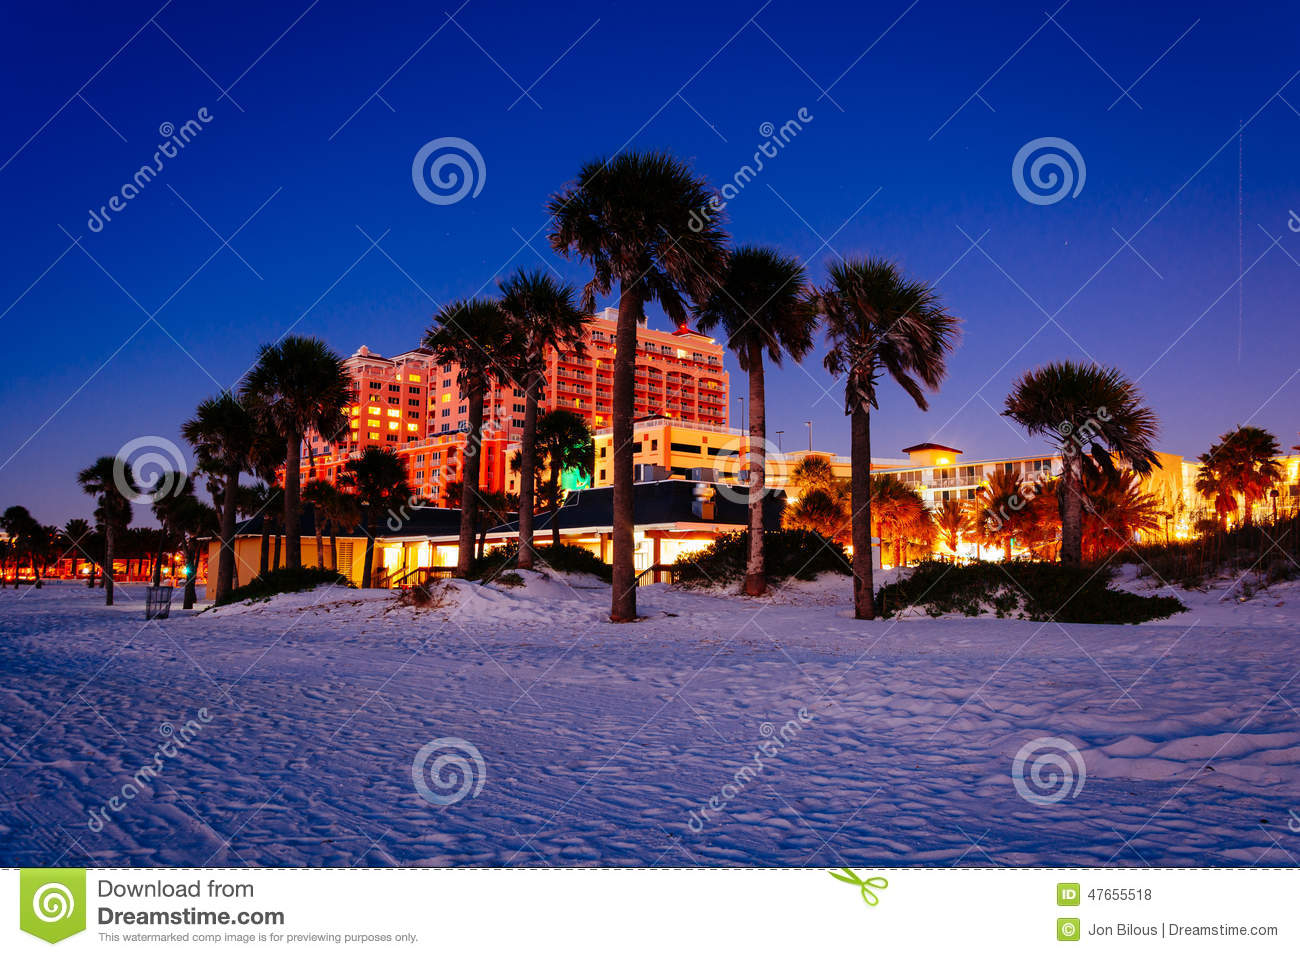 60 Clipart Palm Trees On The Beach At Night In Clearwater Beach